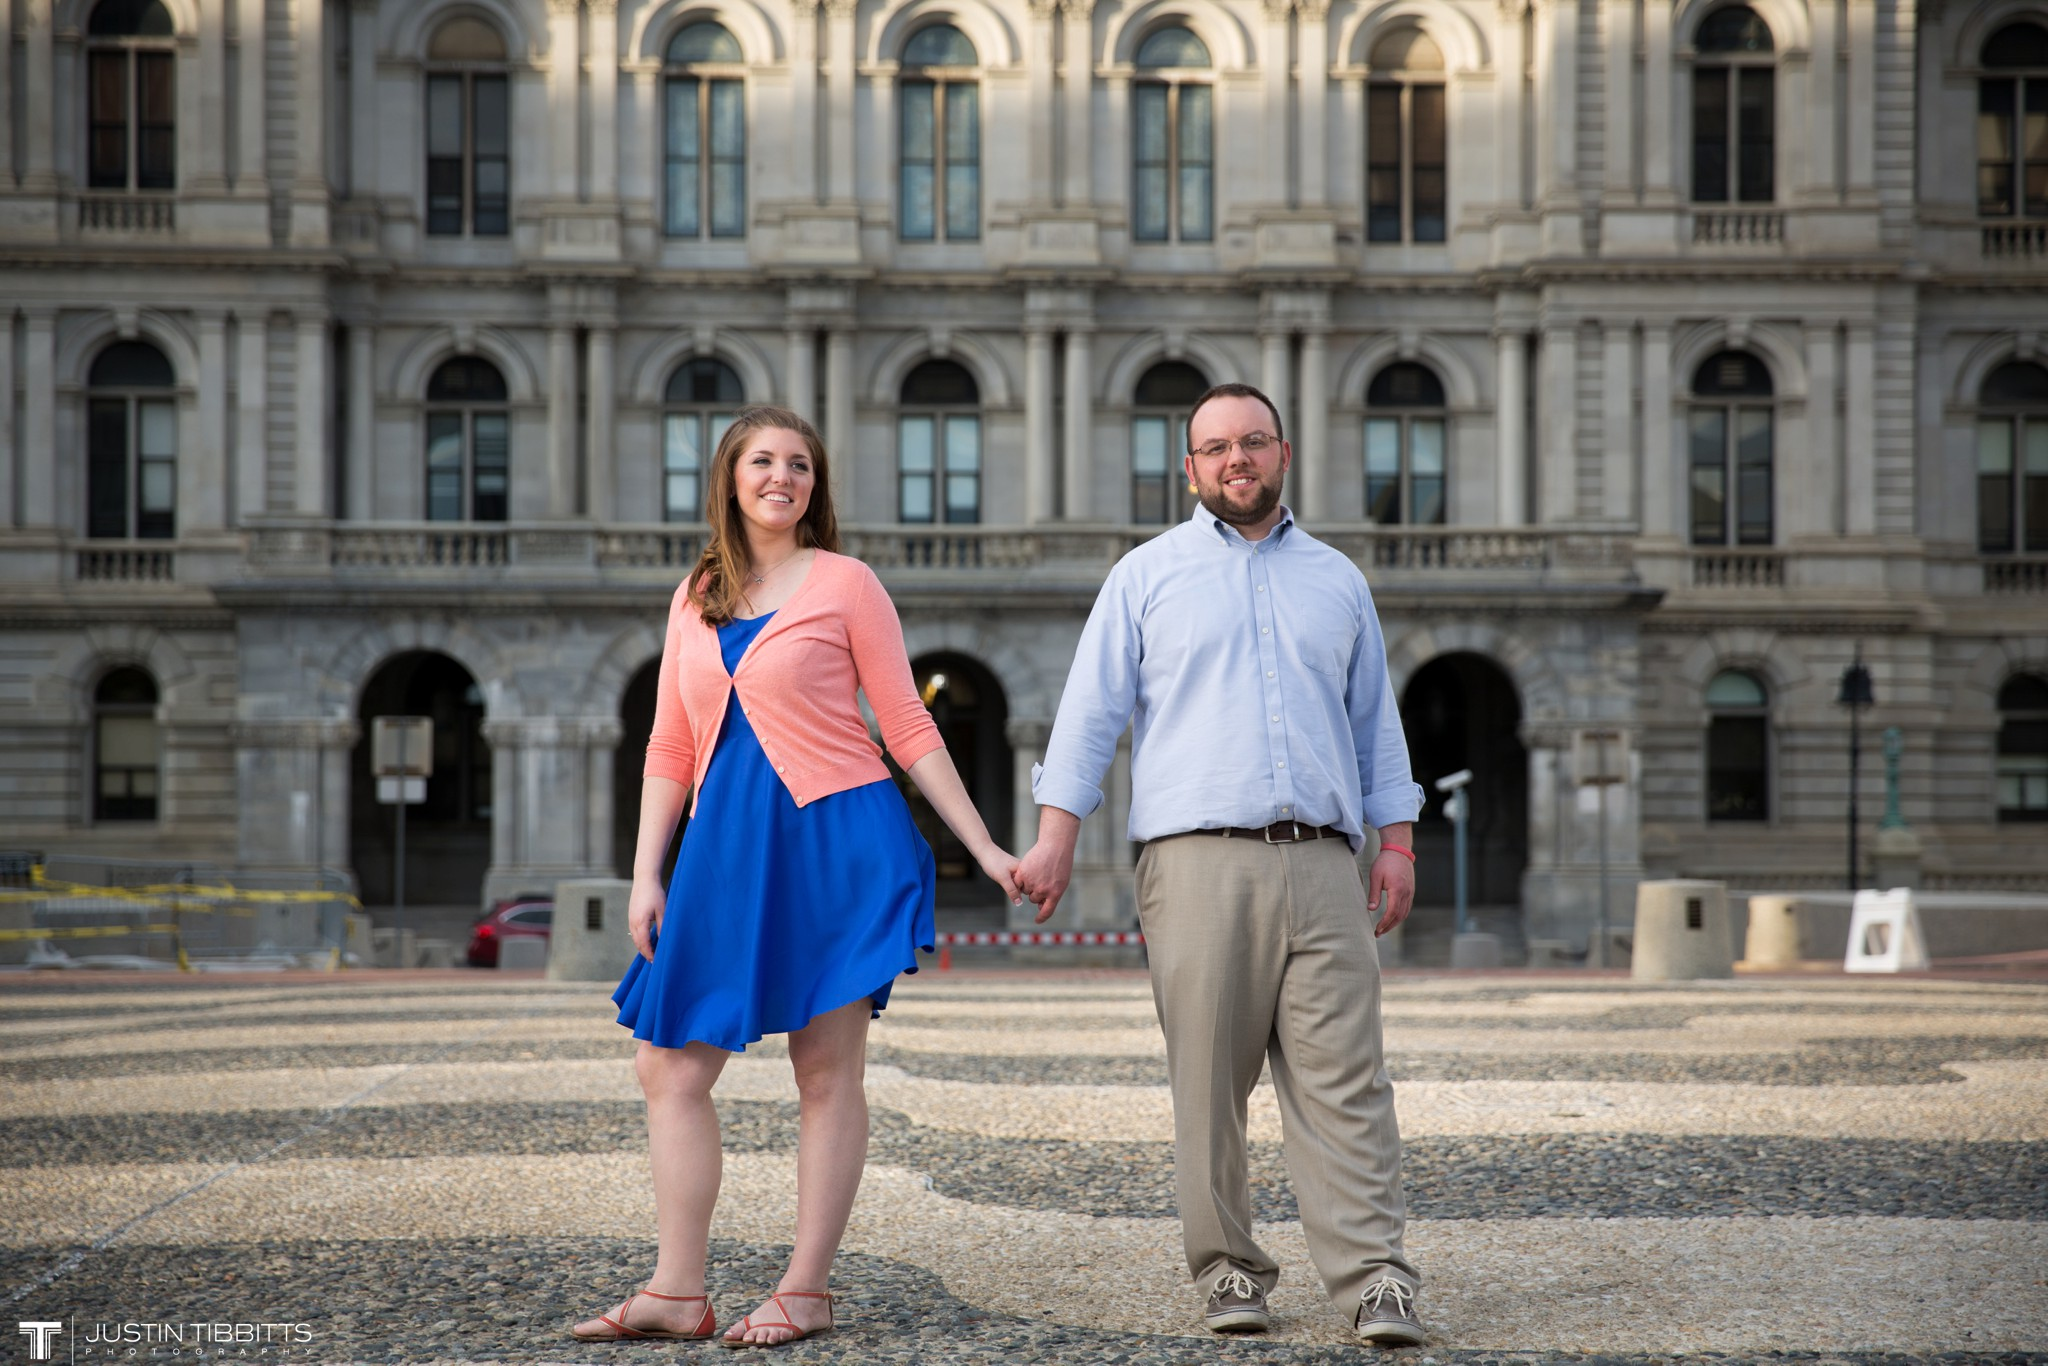 Justin Tibbitts Photography Sara and Erics Albany NY Engagement Photoshoot-54